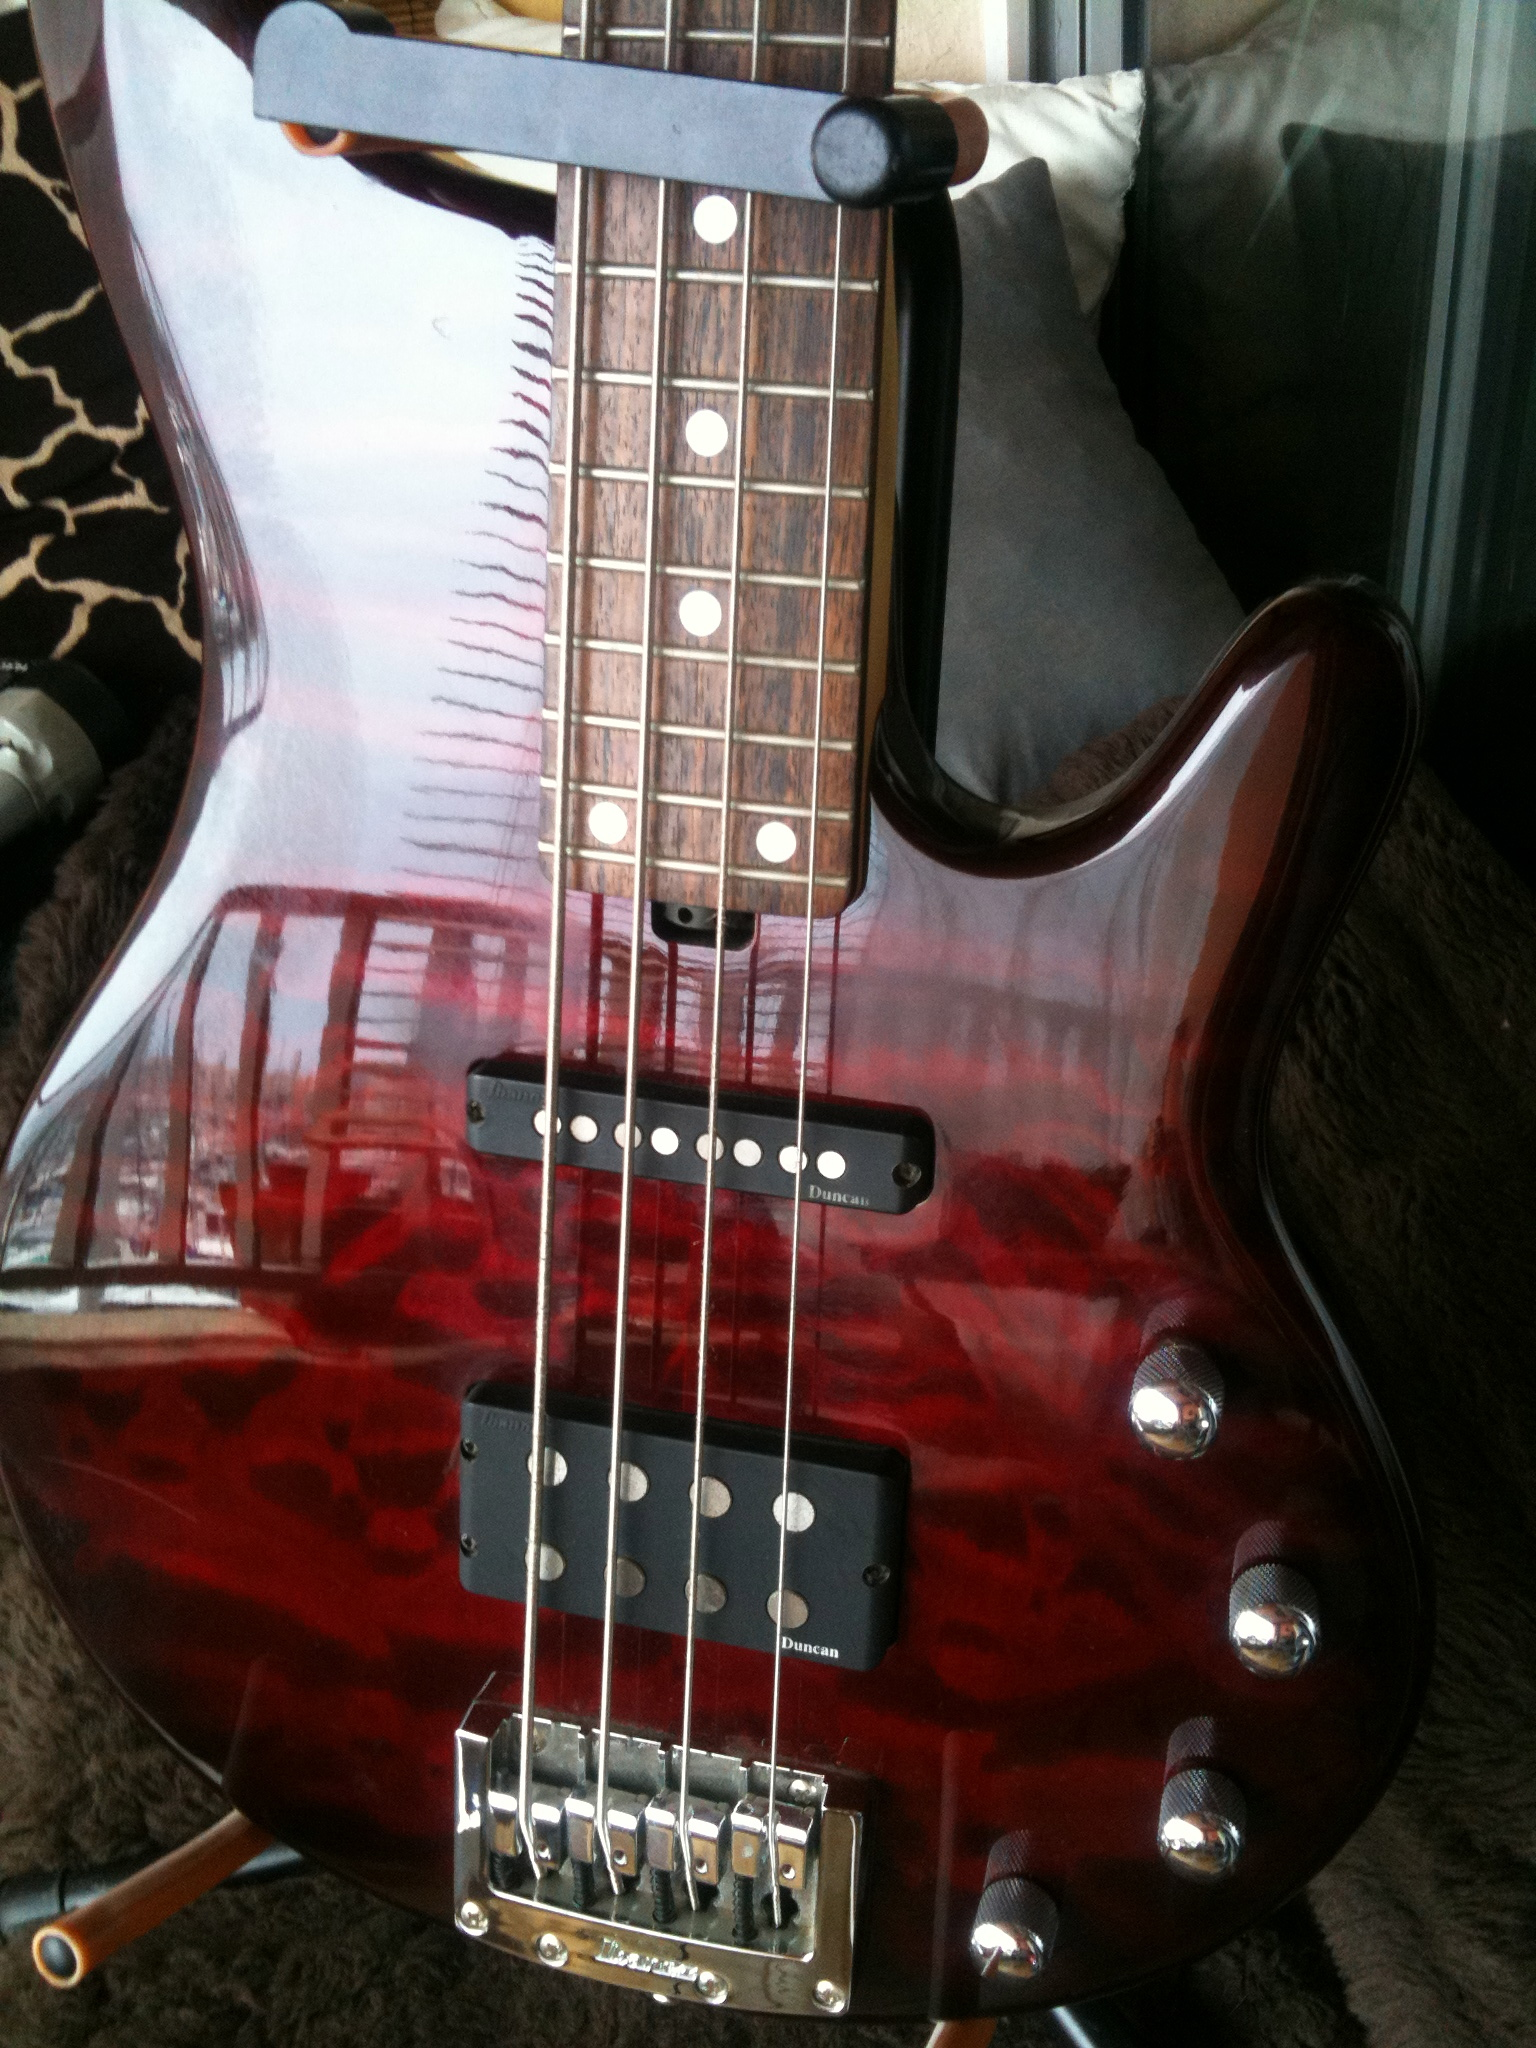 Excellent Dimarzio Wiring Small Telecaster 5 Way Switch Wiring Diagram Flat Viper Remote Start Wiring Two Humbuckers 5 Way Switch Youthful Bulldog Car Wiring Diagrams BrightFree Tsb Ibanez RD500 Image (#413118)   Audiofanzine